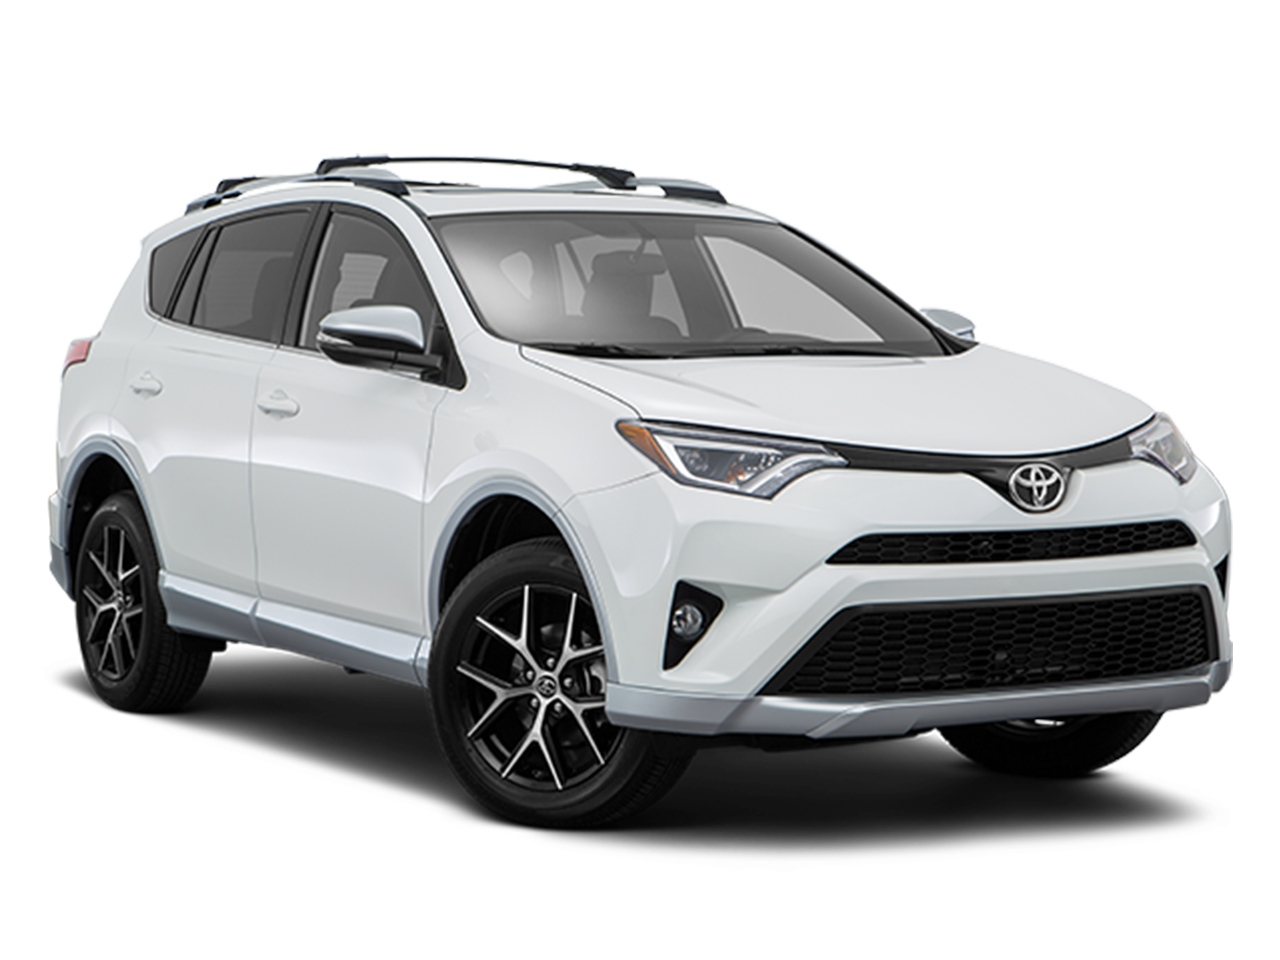 compare toyota 2015 rav4 and the honda crv autos post. Black Bedroom Furniture Sets. Home Design Ideas